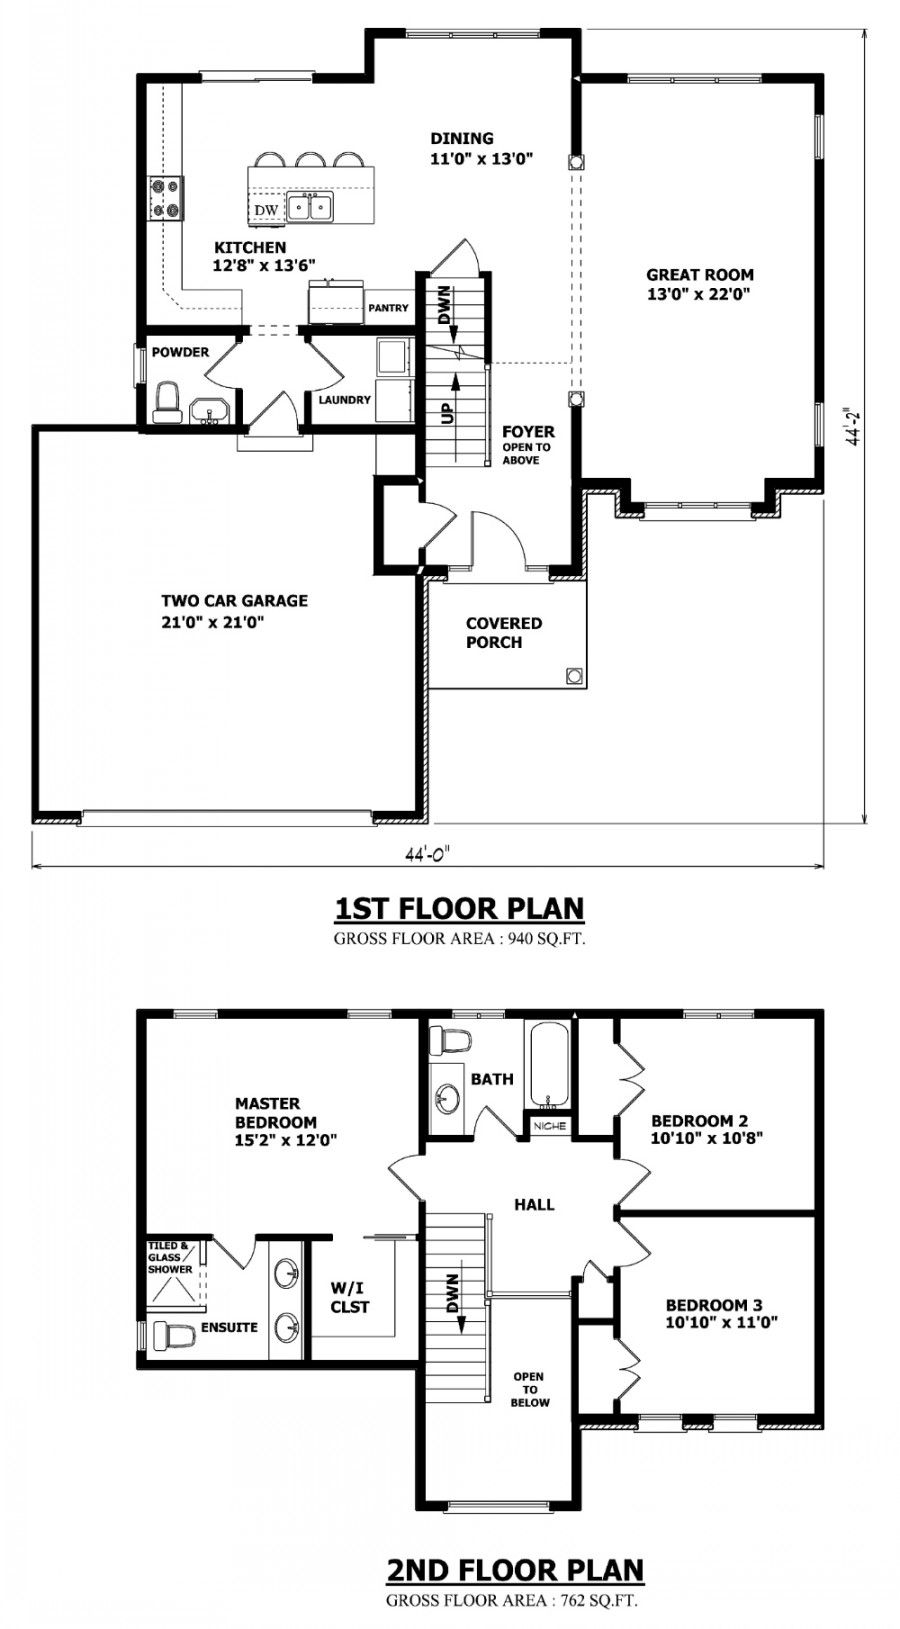 HOME DESIGNS Custom House Plans Stock House Plans amp